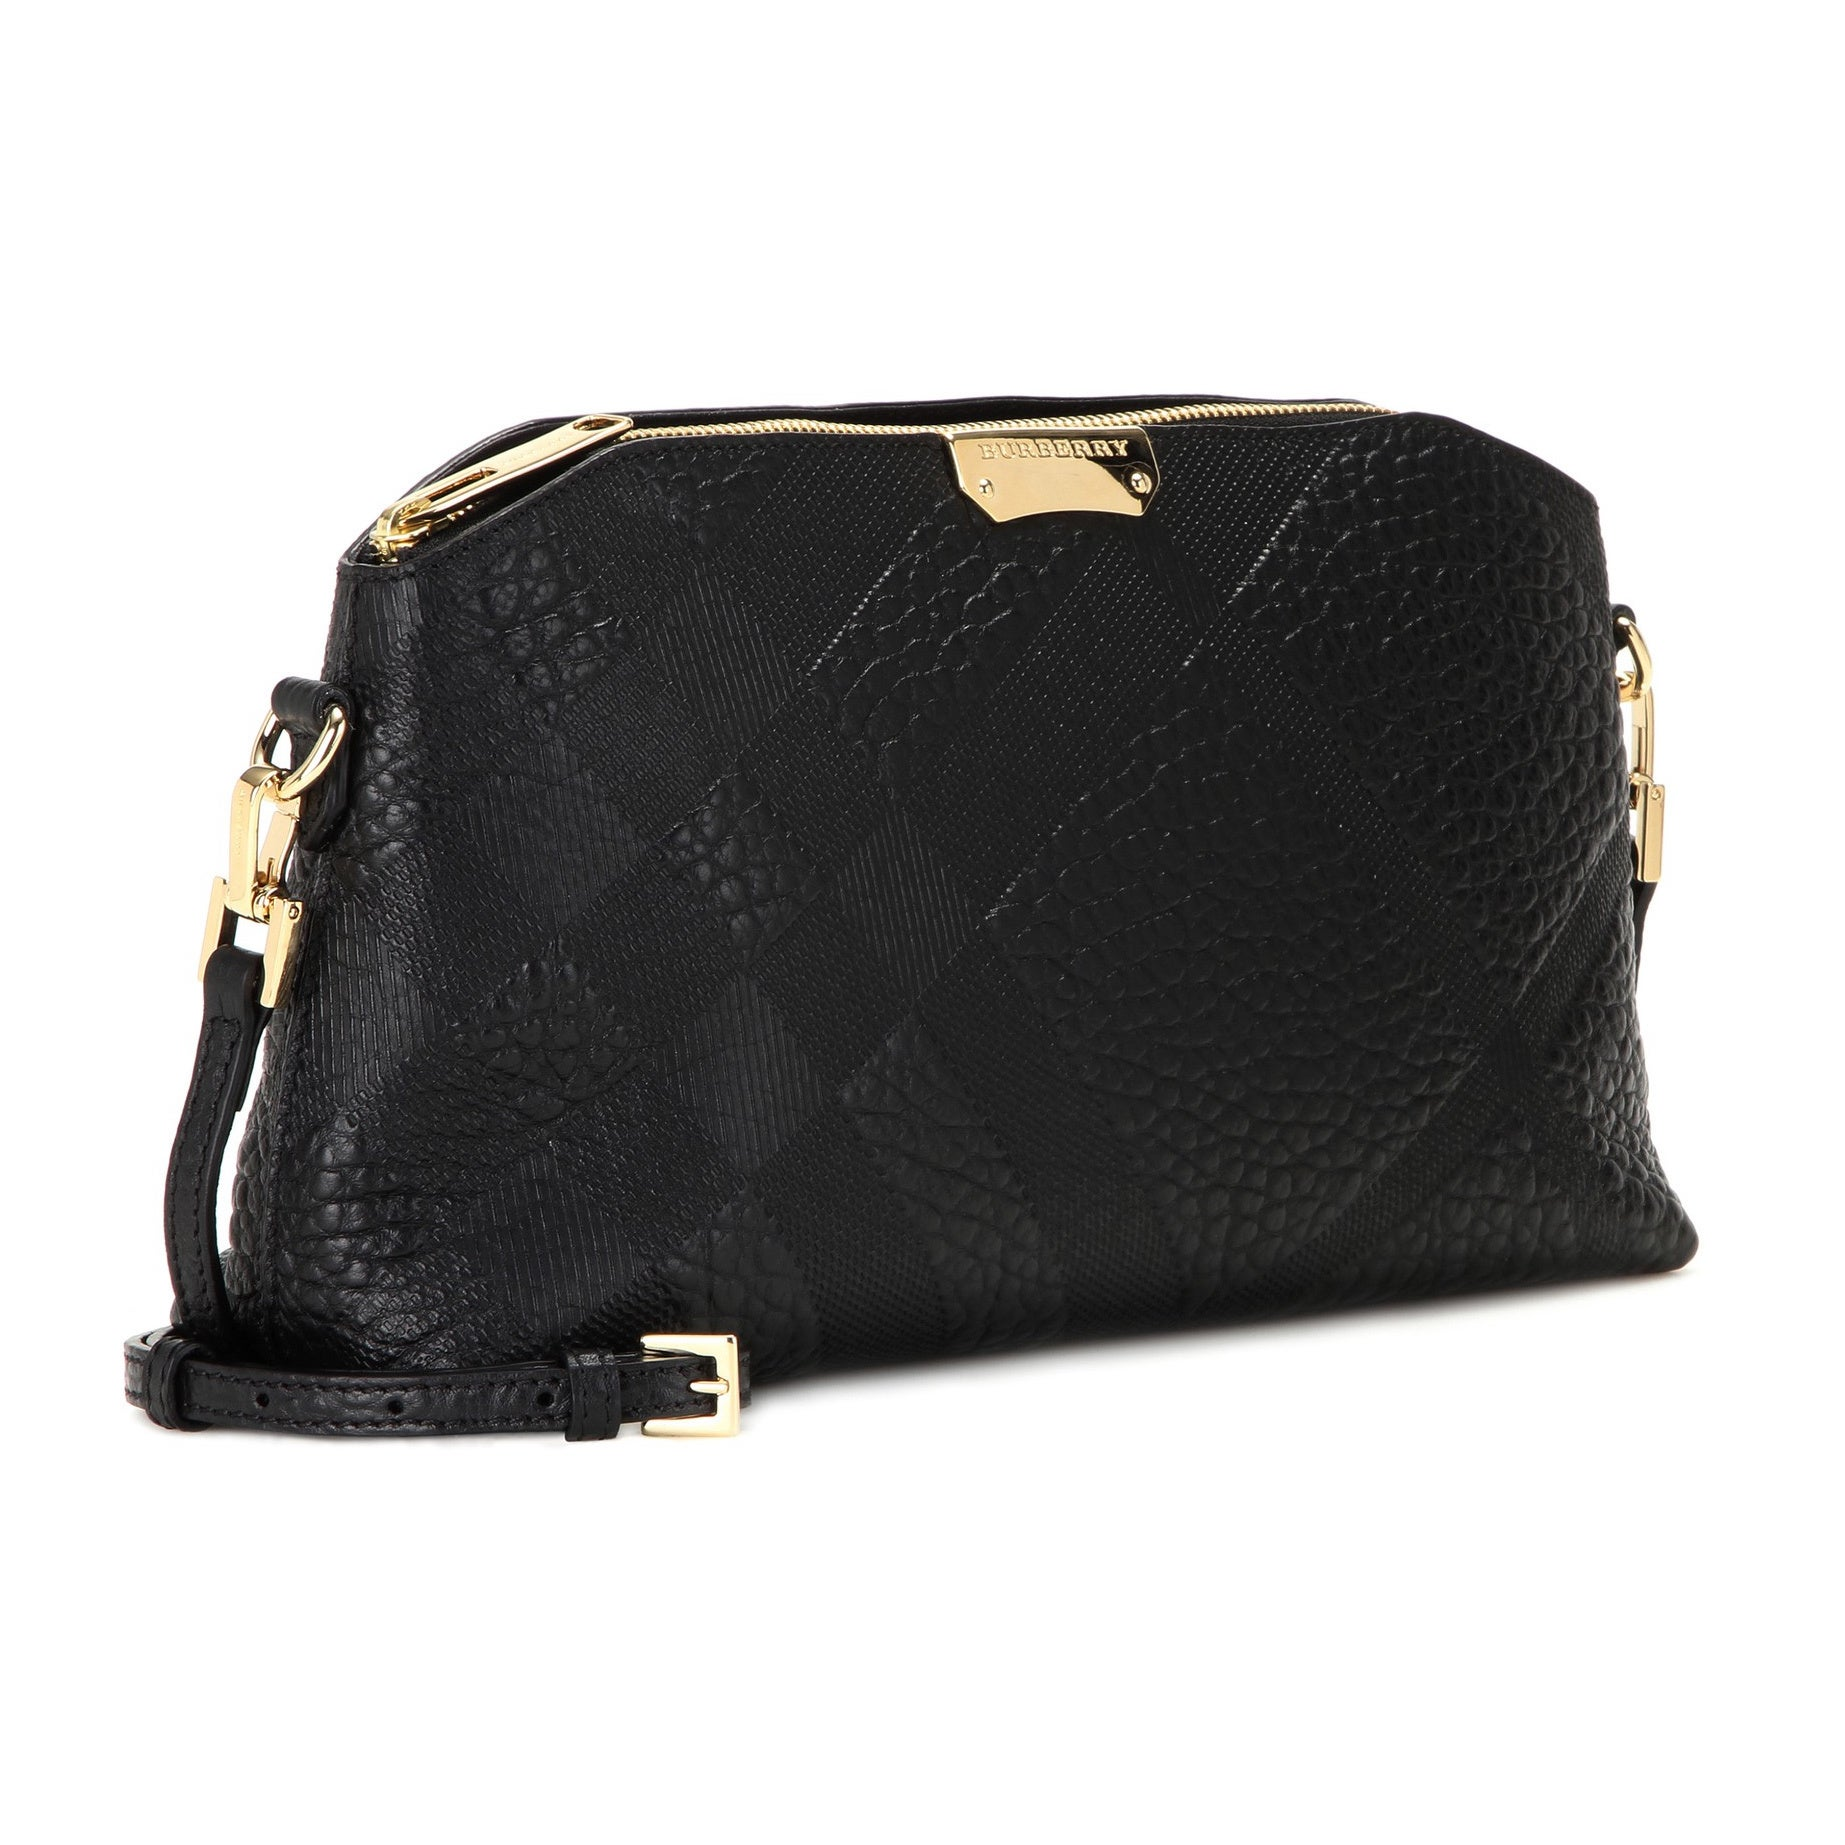 1338d6383d2c Shop Burberry Chichester Black Leather Check Crossbody Bag - Free Shipping  Today - Overstock - 14268929